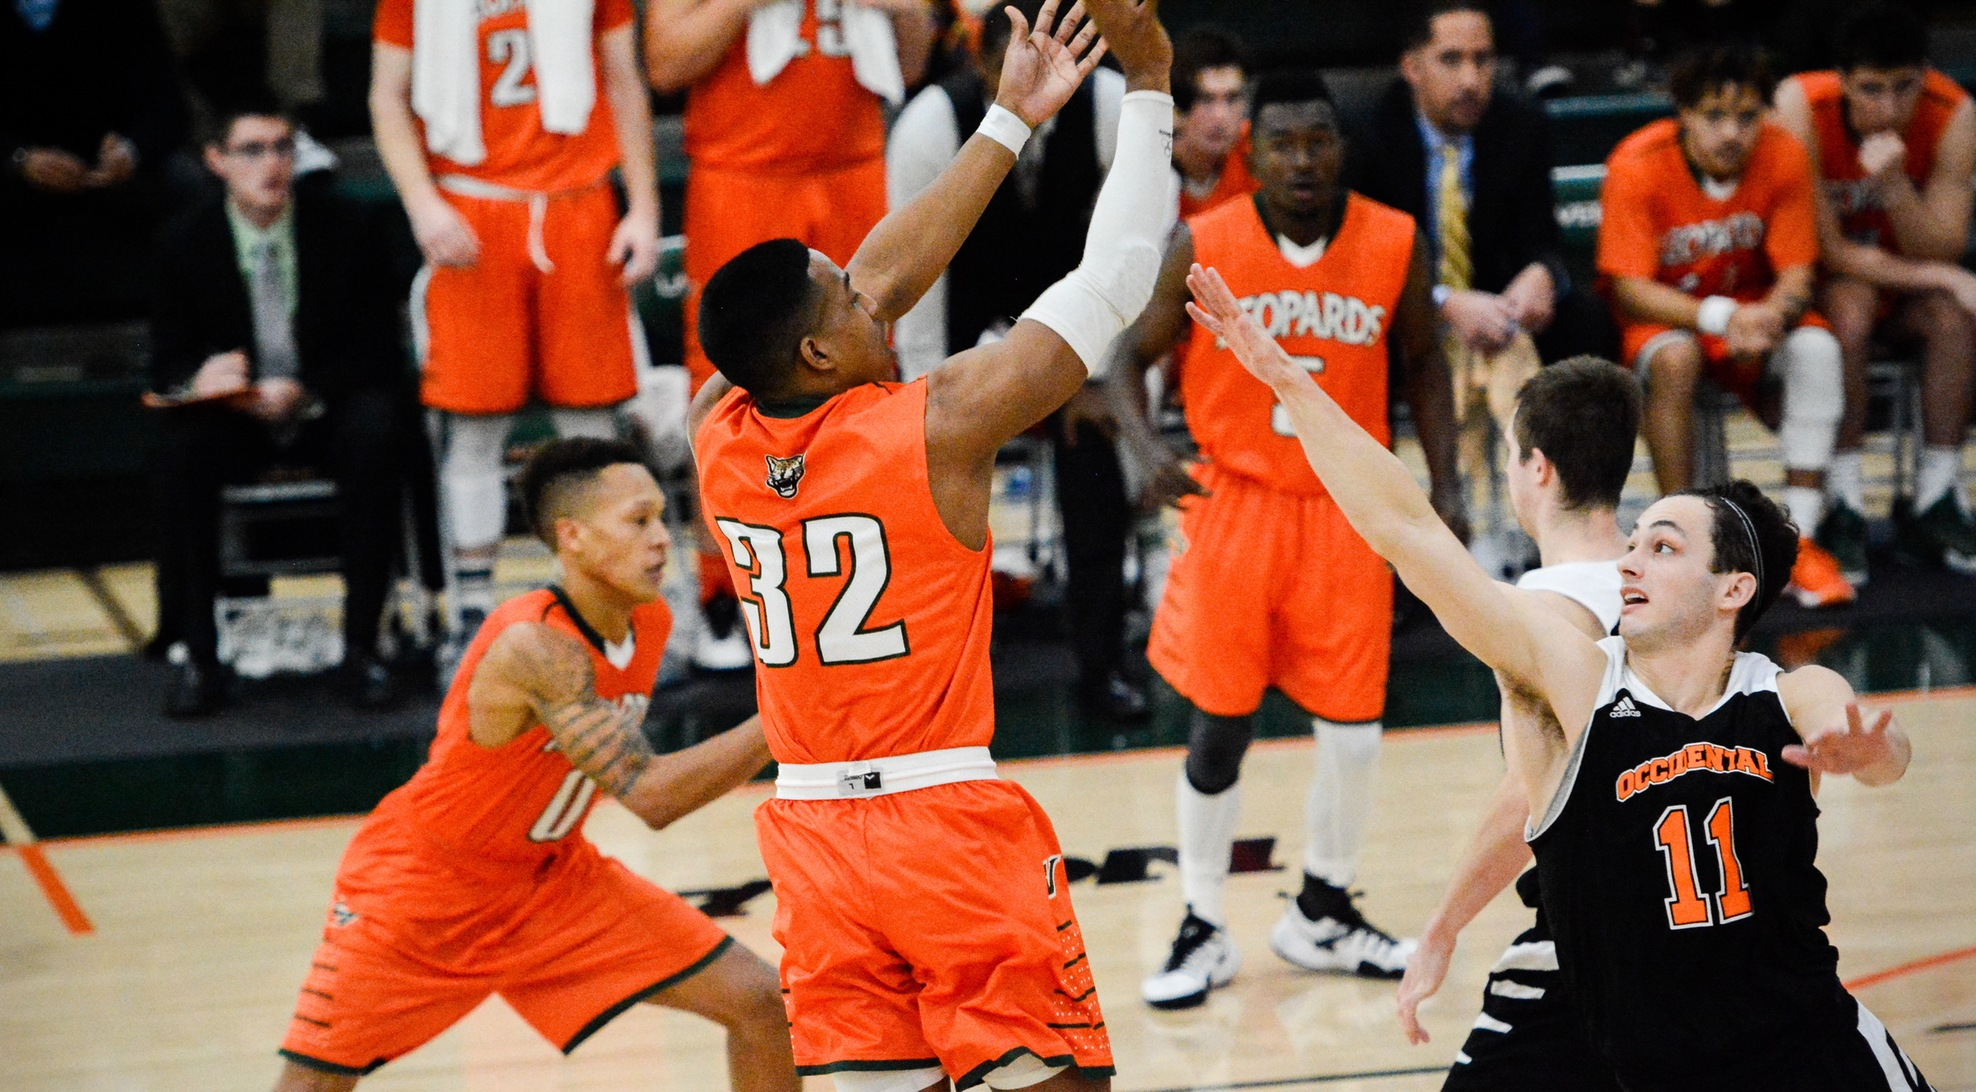 La Verne rallies to slip past Oxy 74-70